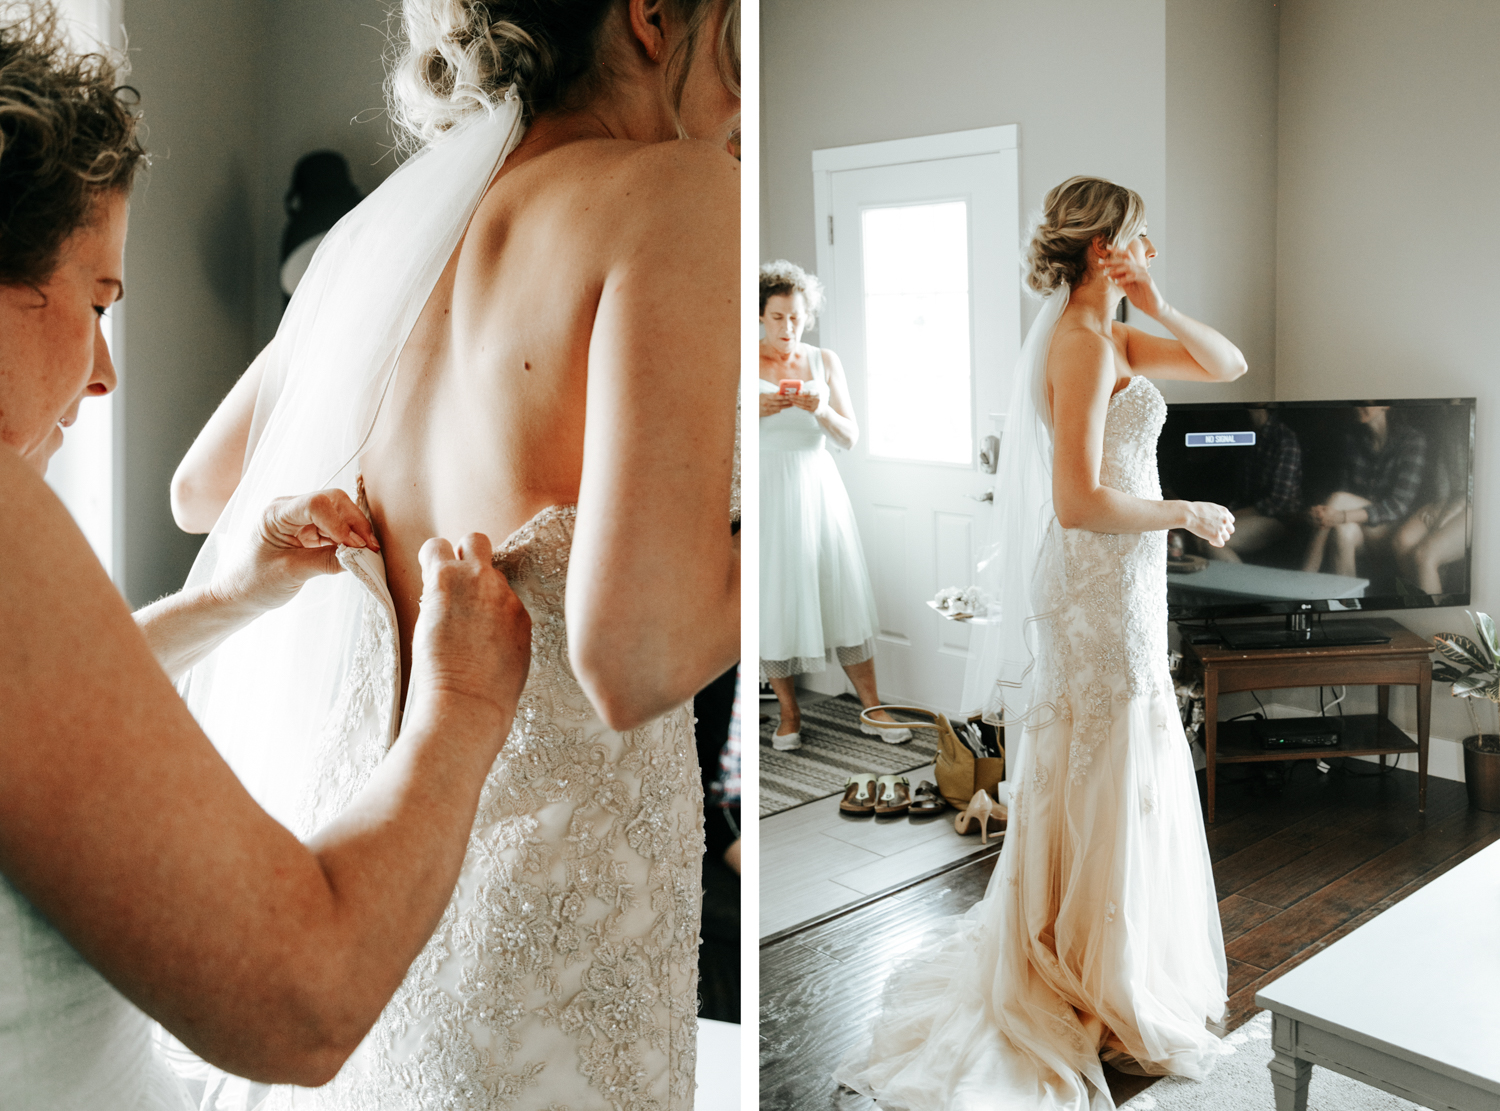 lethbridge-wedding-photographer-love-and-be-loved-photography-bailey-joel-lethbridge-wedding-picture-image-photo-33.jpg